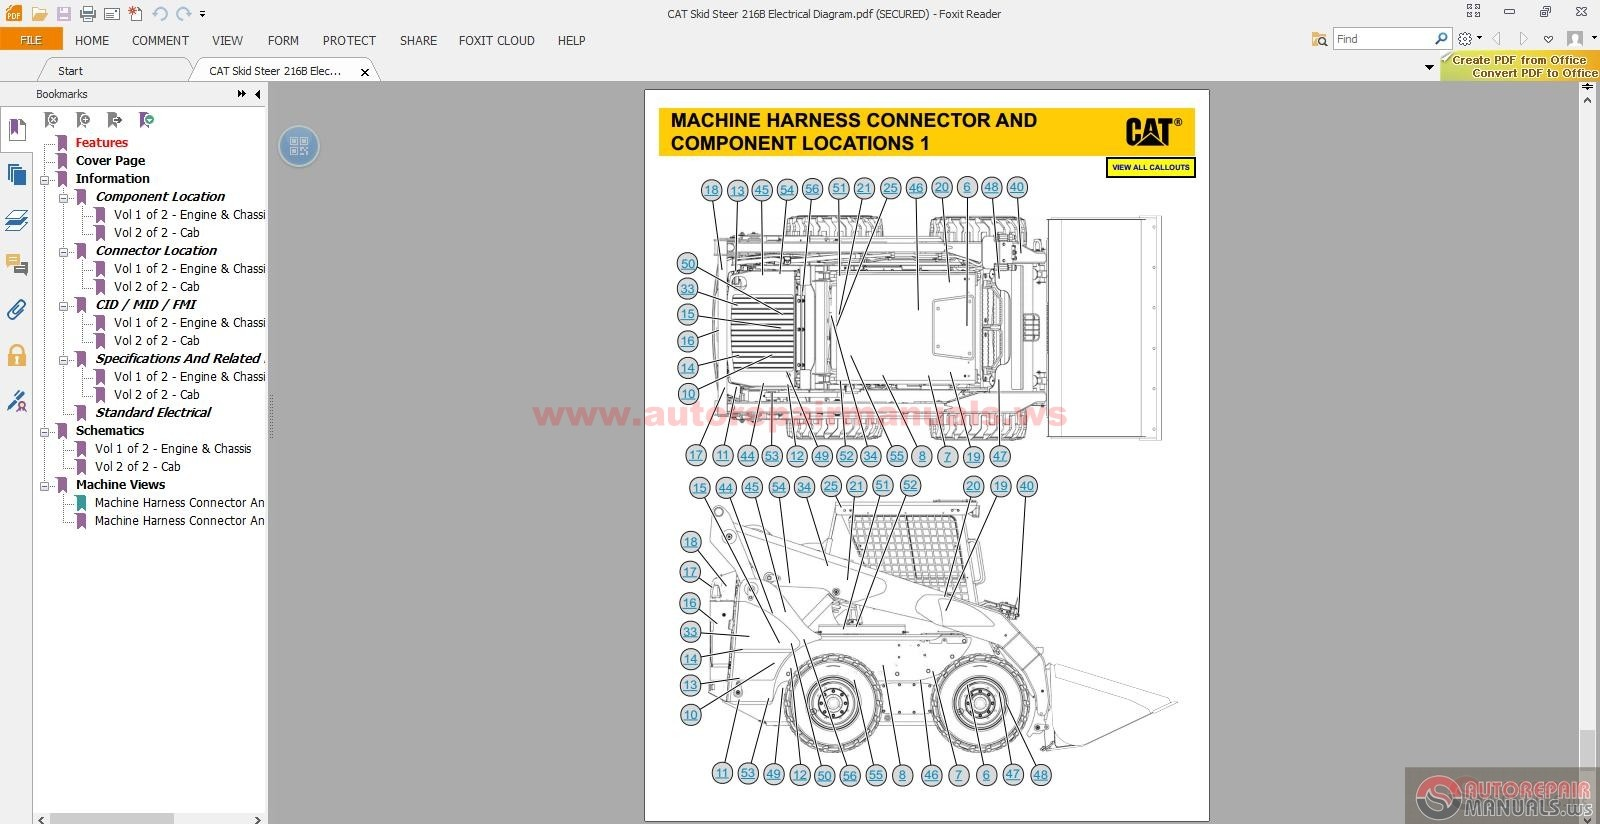 cat 246 wiring diagram cat wiring diagrams cat skid steer 216b electrical diagram 3 cat wiring diagram cat skid steer 216b electrical diagram 3